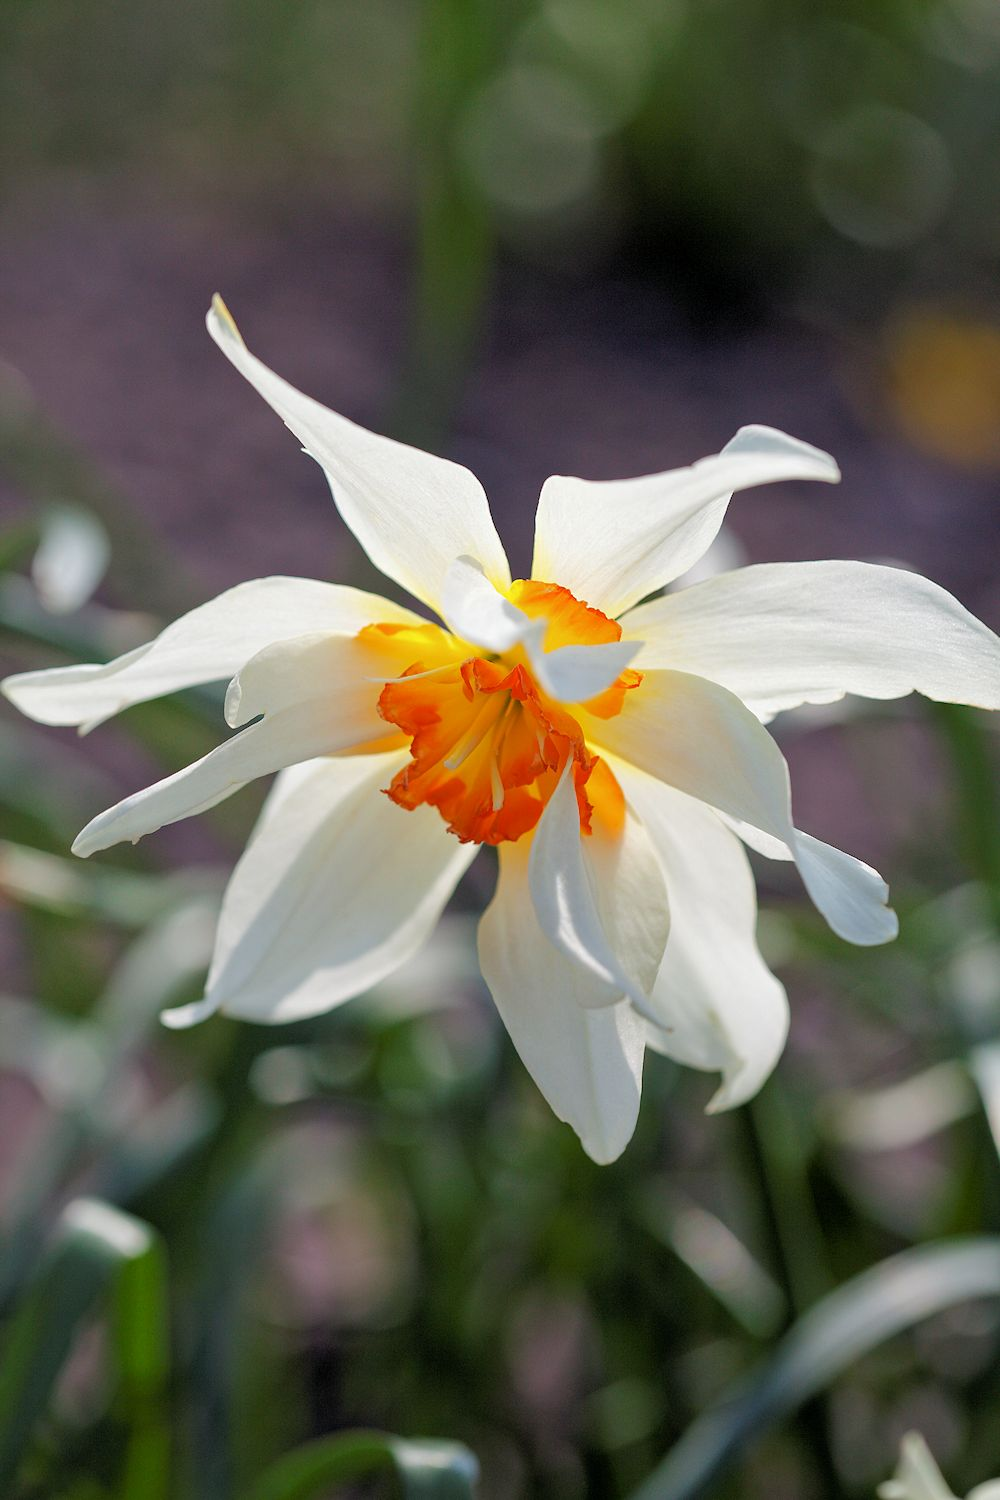 Daffodil Book Review